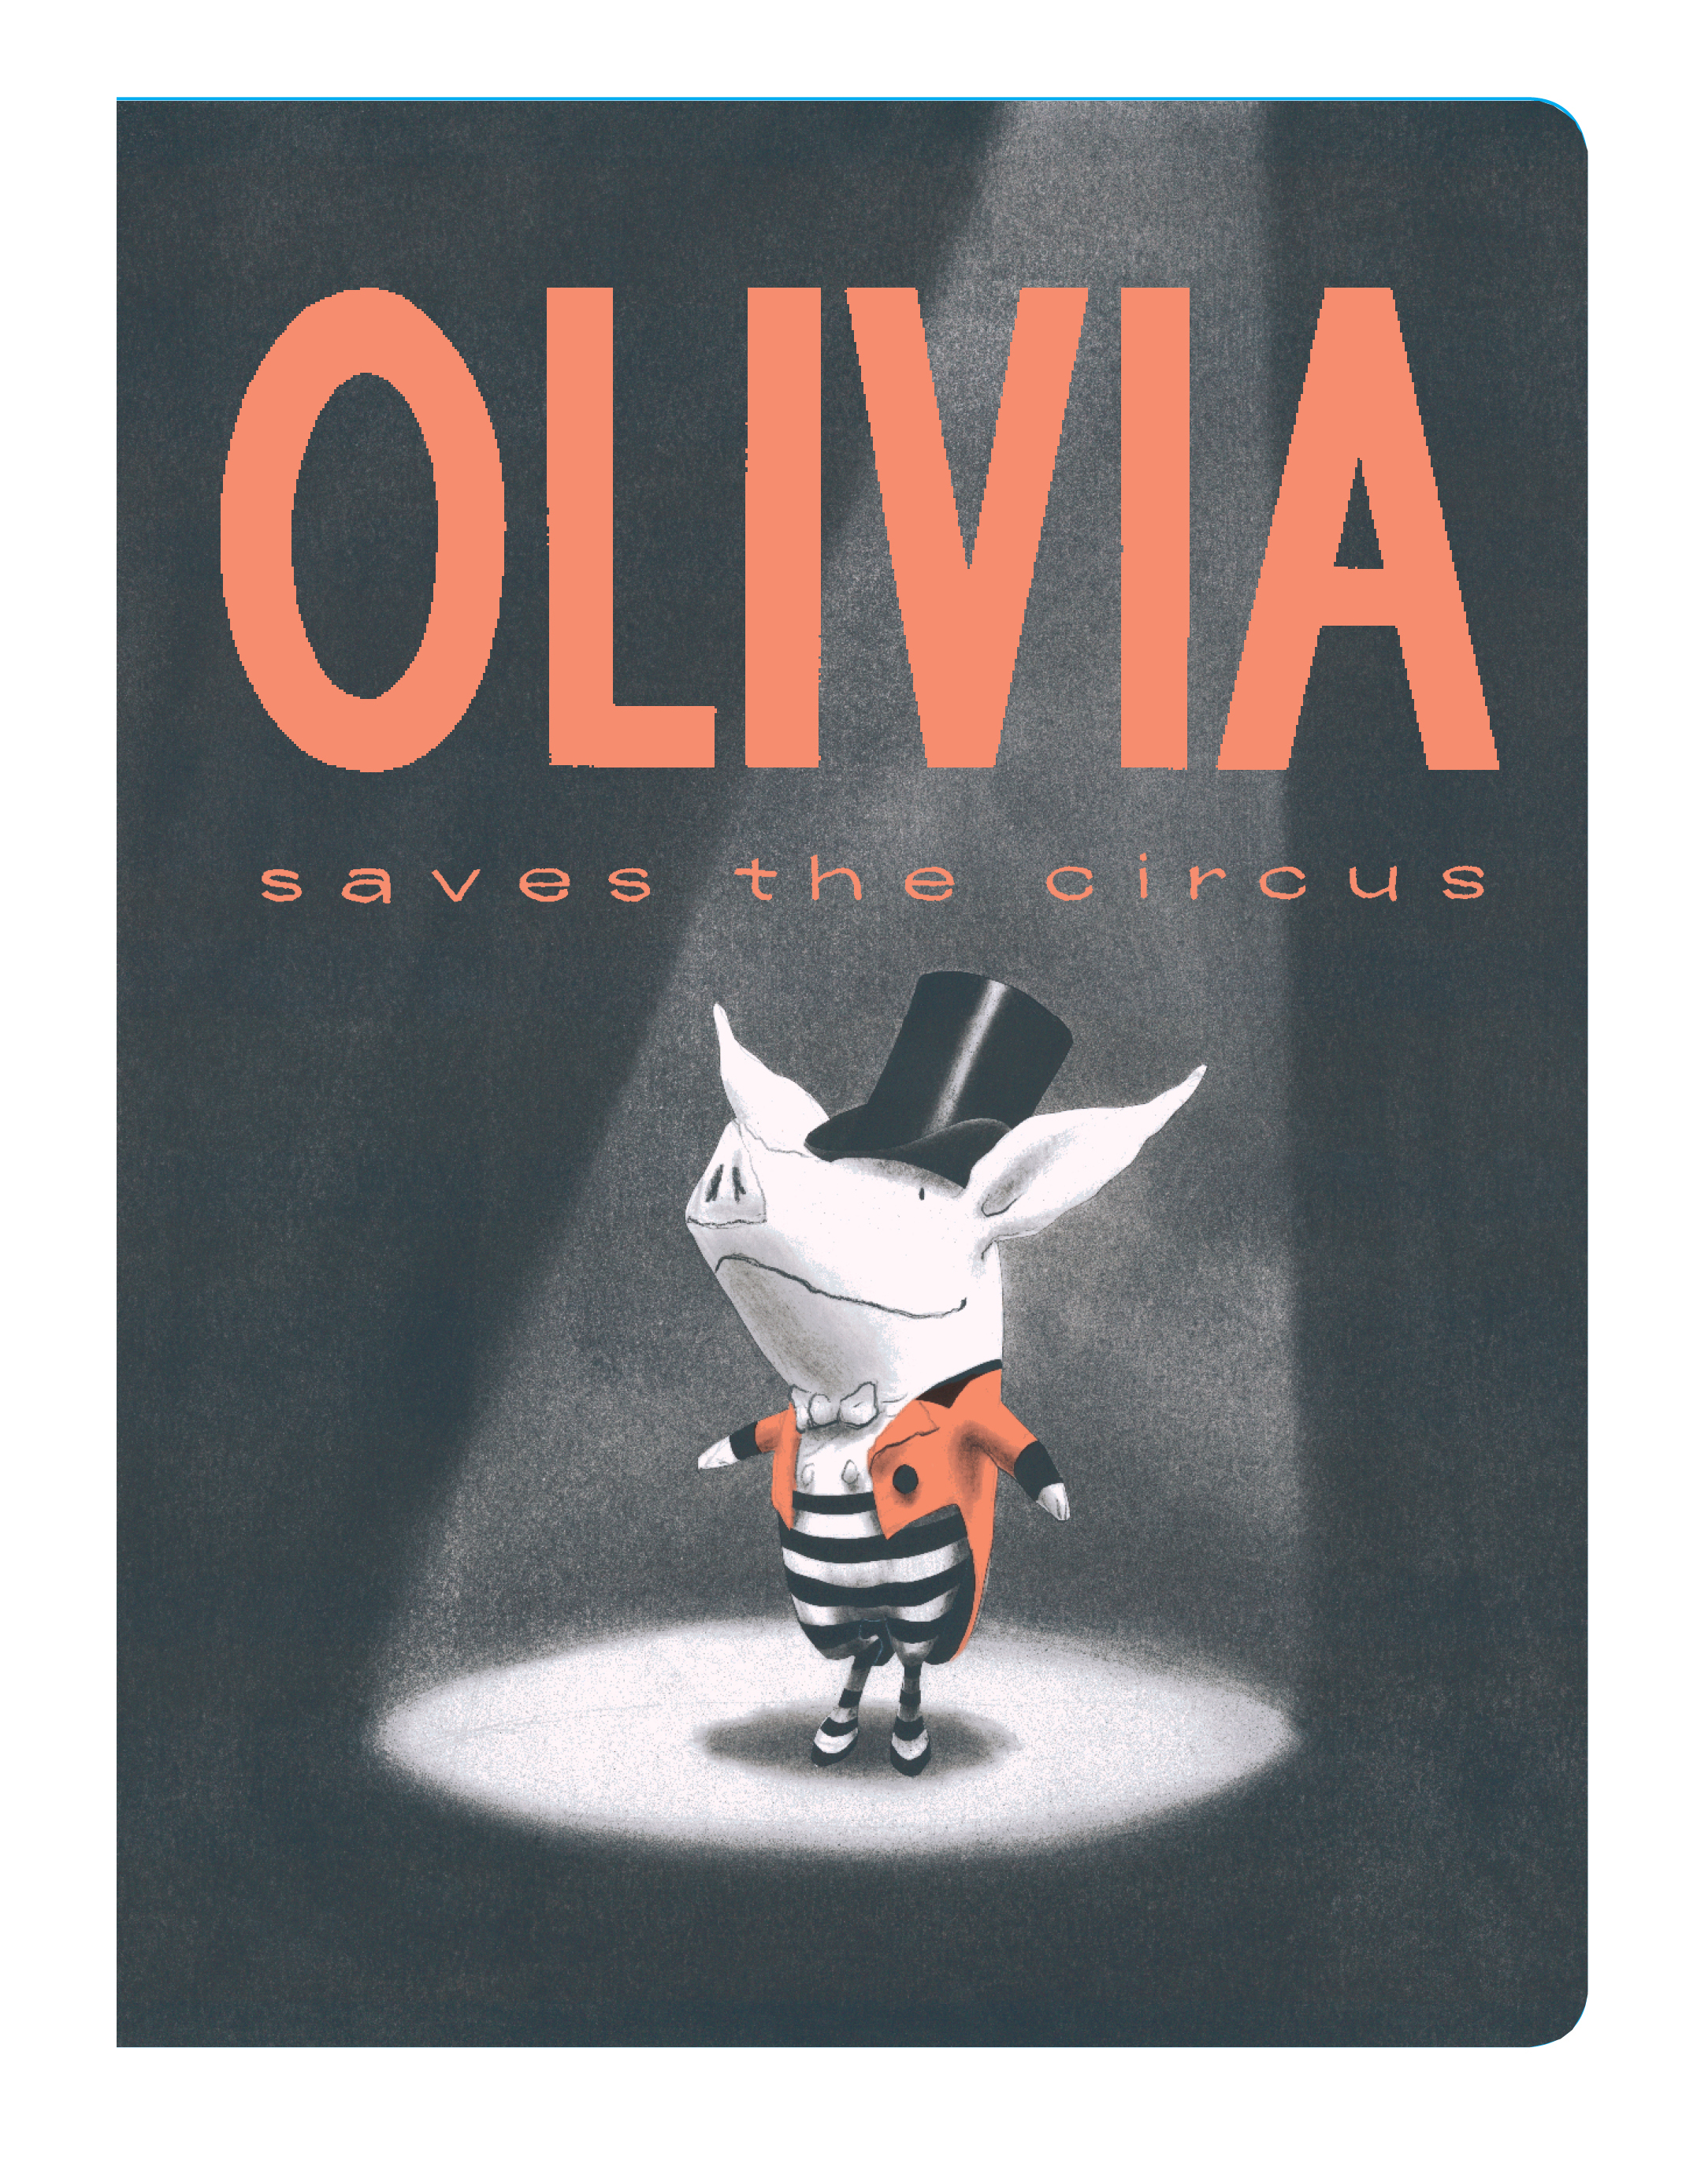 Book Cover Image (jpg): Olivia Saves the Circus